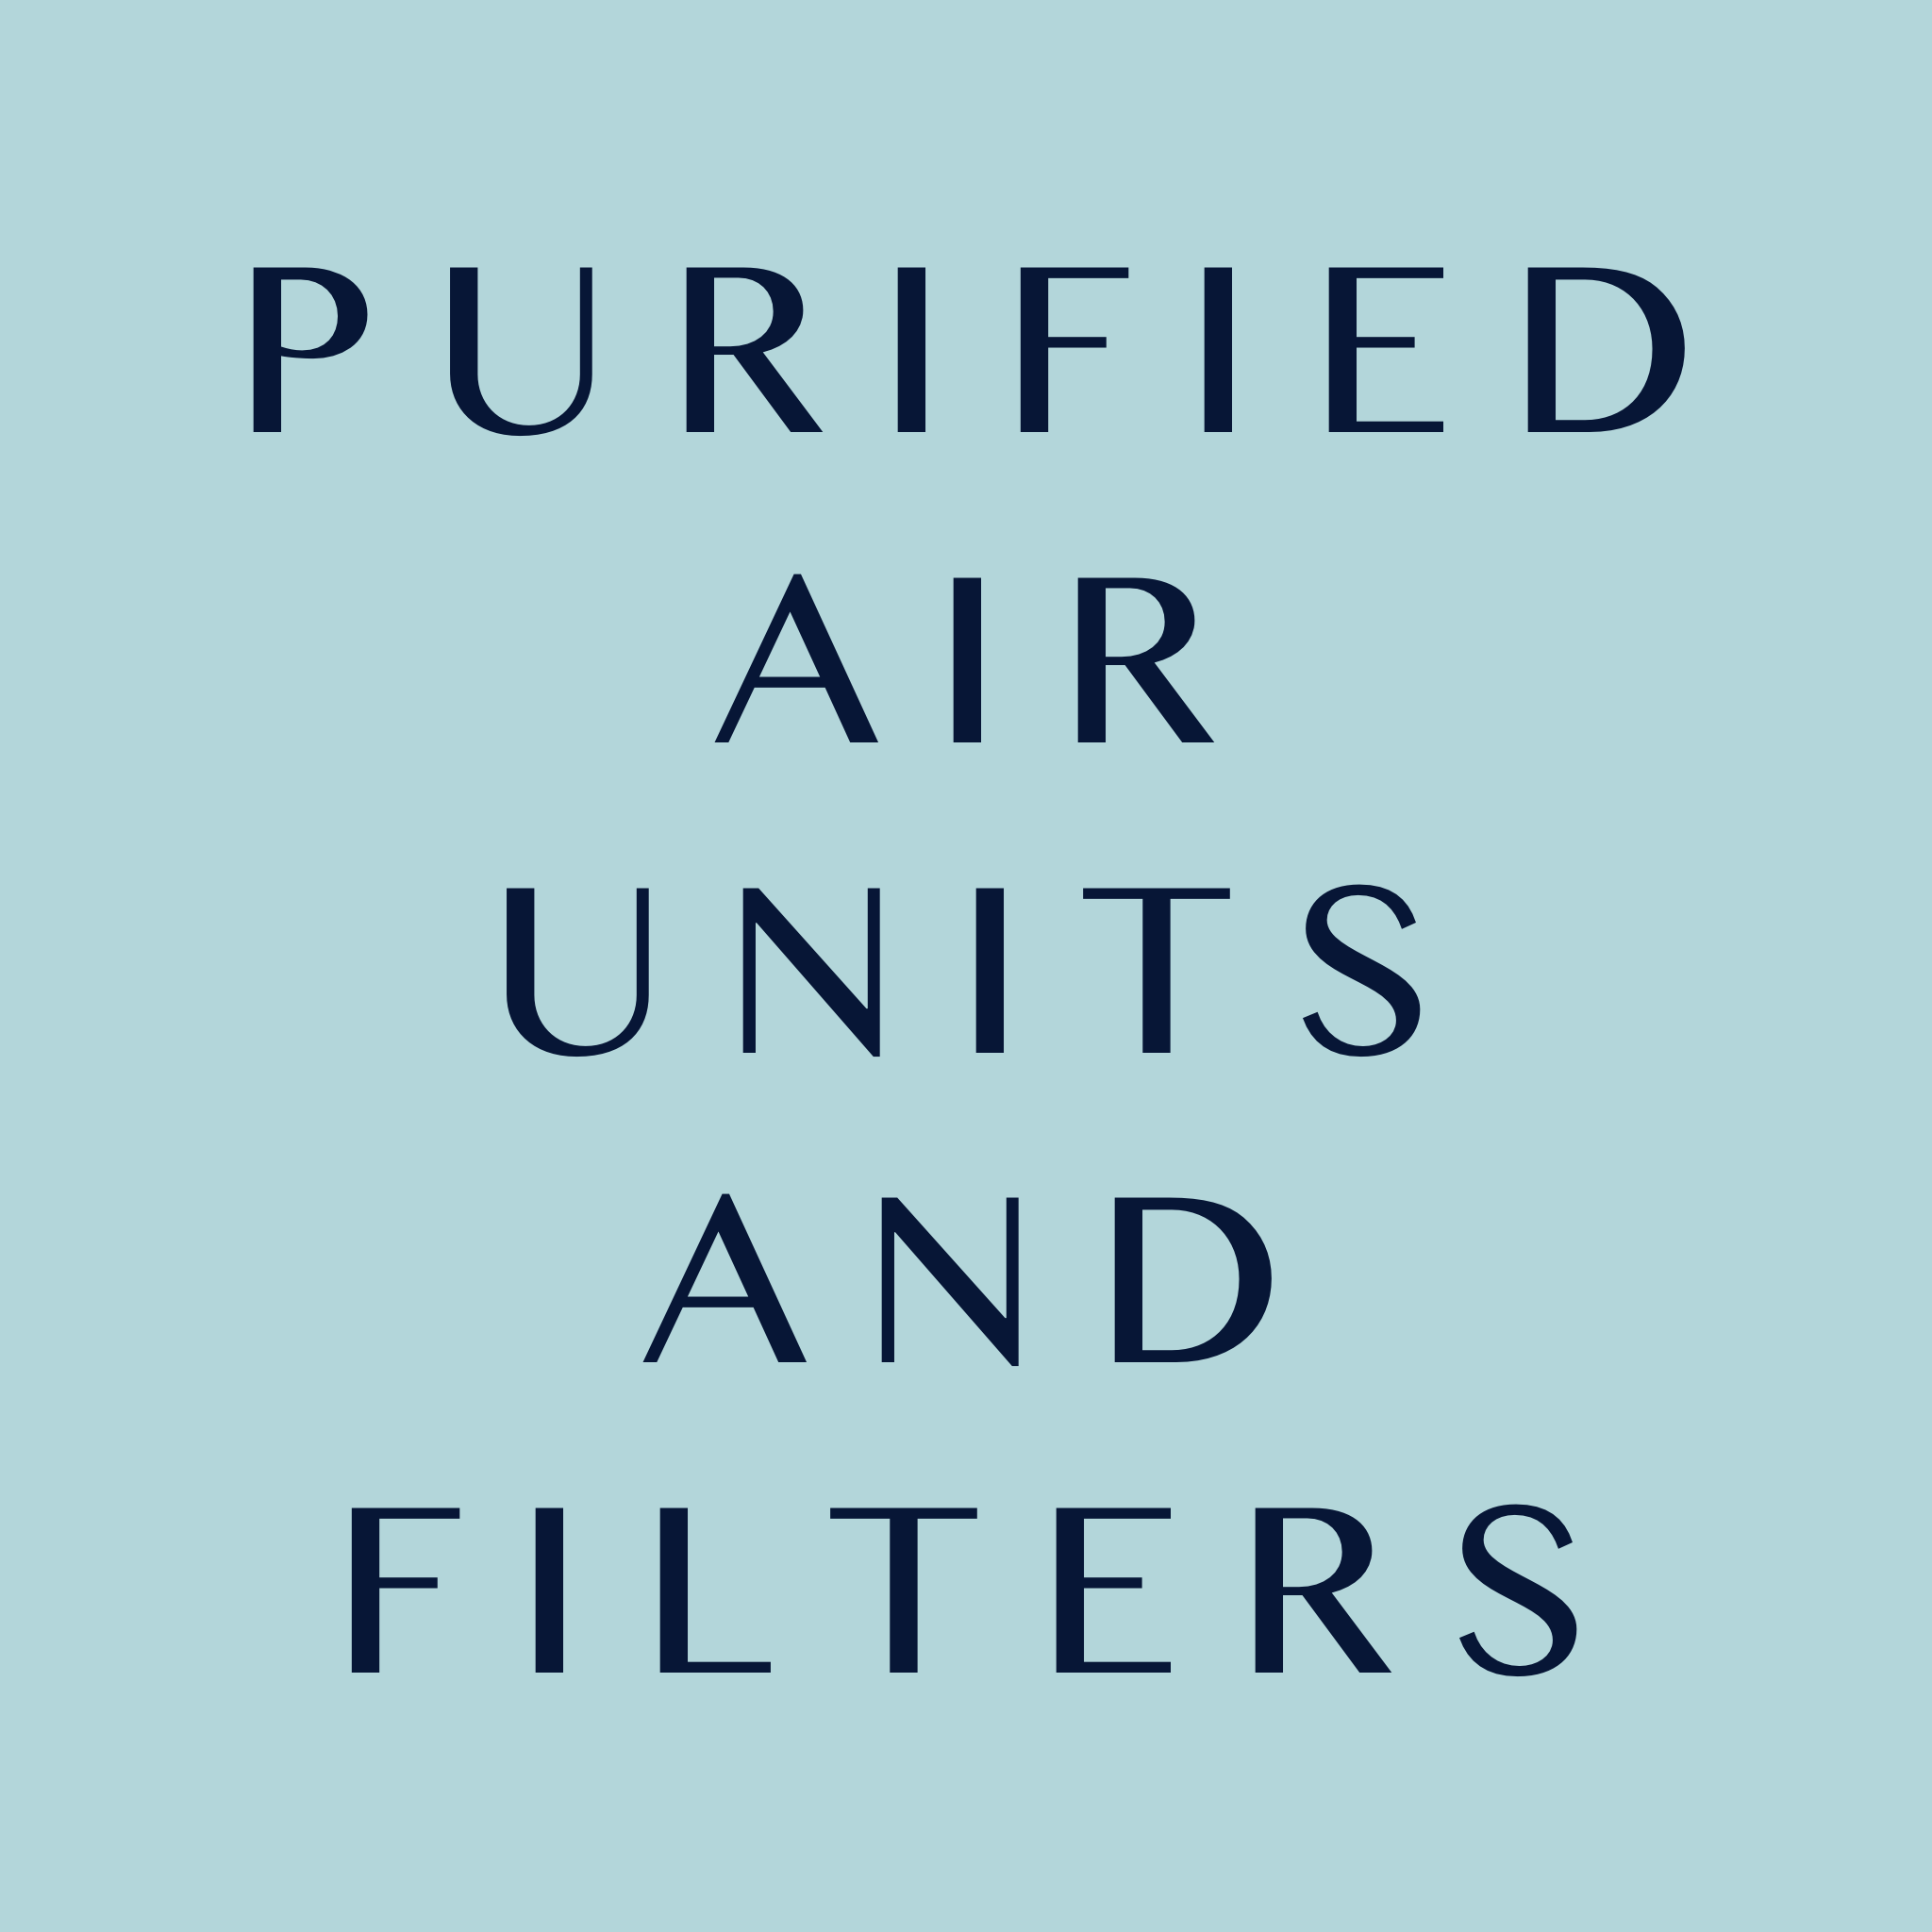 Purified Air Units and Filters